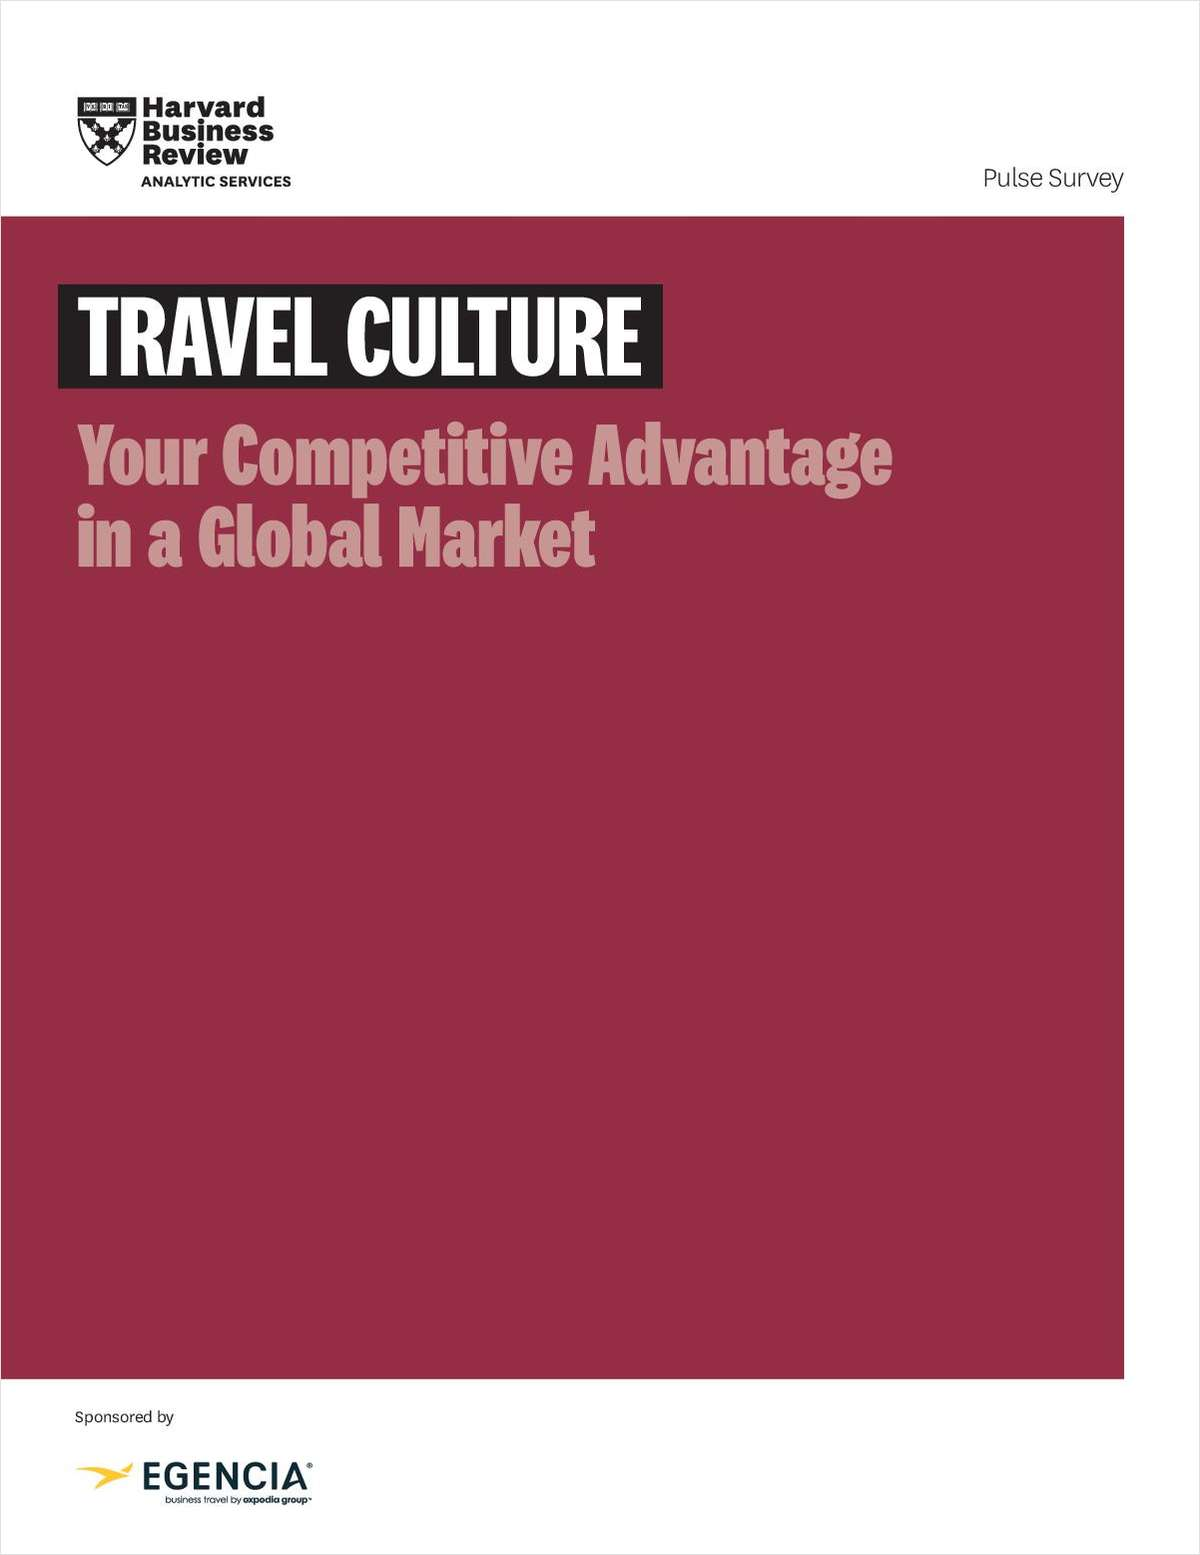 Travel Culture: Your Competitive Advantage